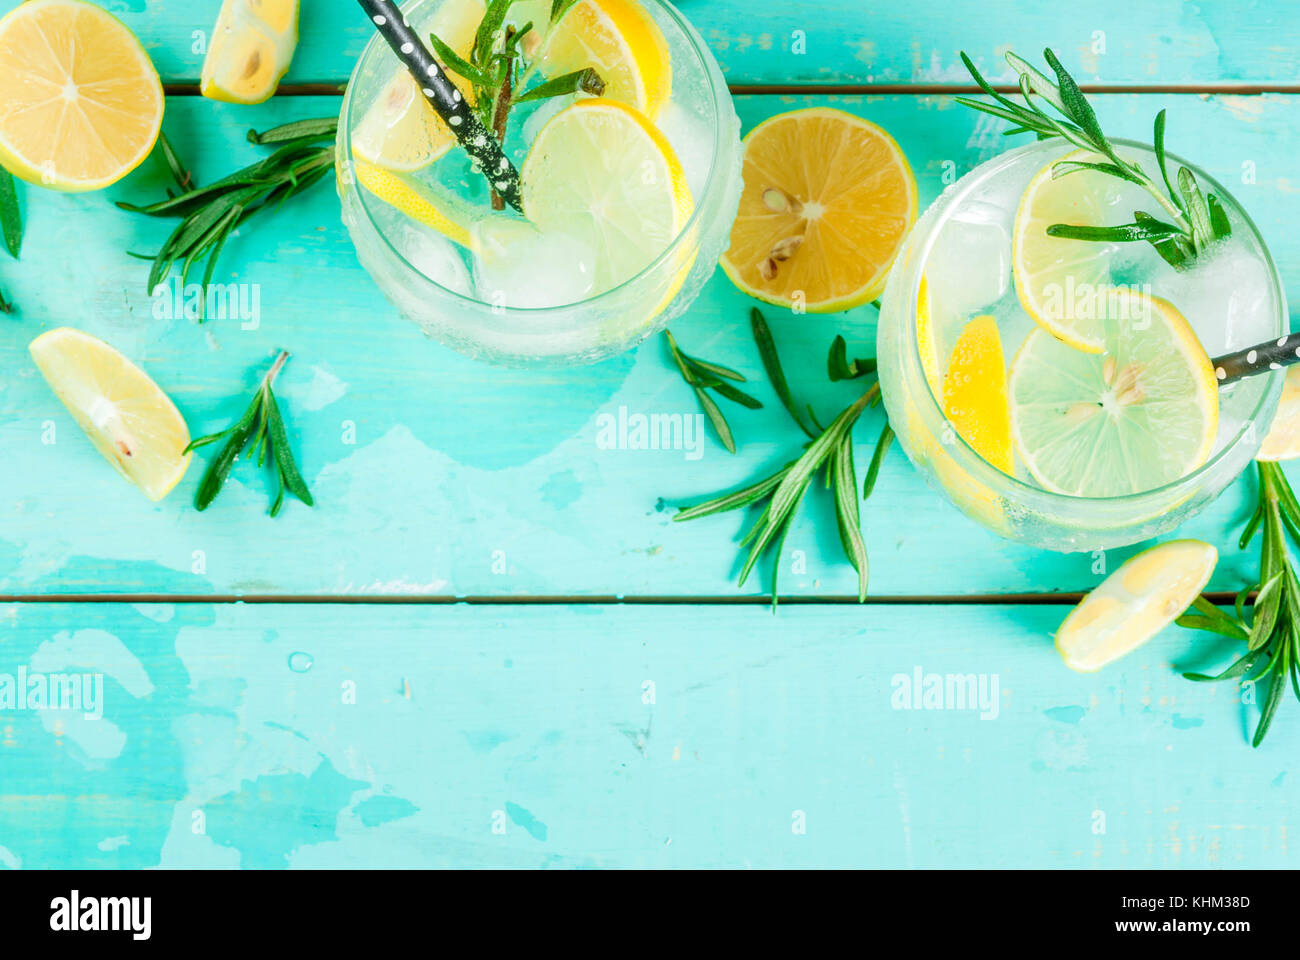 Cold lemonade or alcohol vodka cocktail with lemon and rosemary, on light blue table, copy space top view - Stock Image